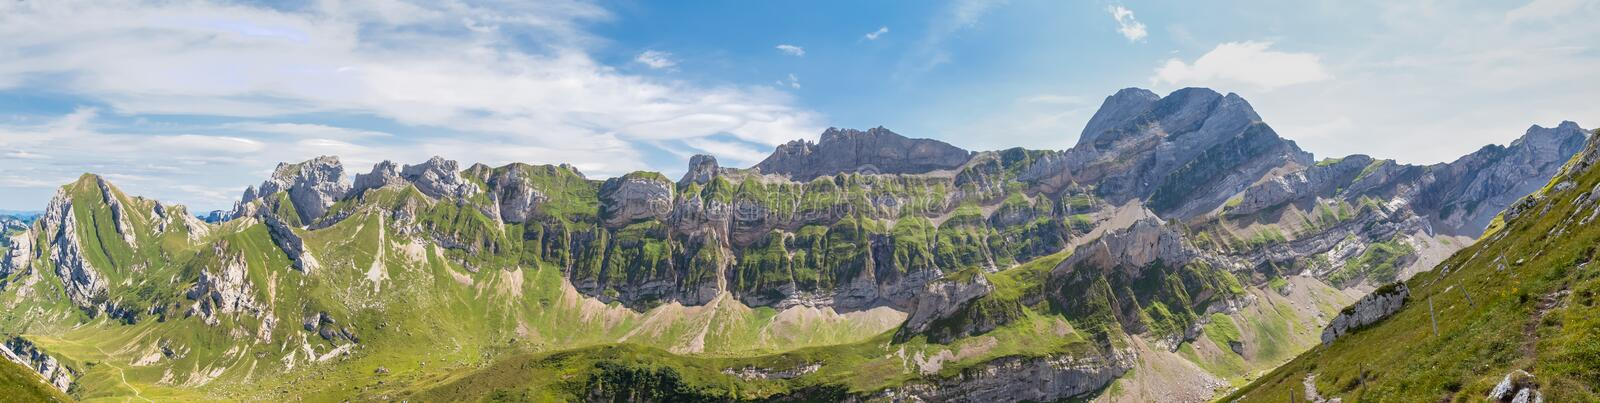 Panorama view of Alpstein massif. Spectaqular panorama view of the Alpstein mountain range with special layer structure, the swiss alps in Switzerland stock images